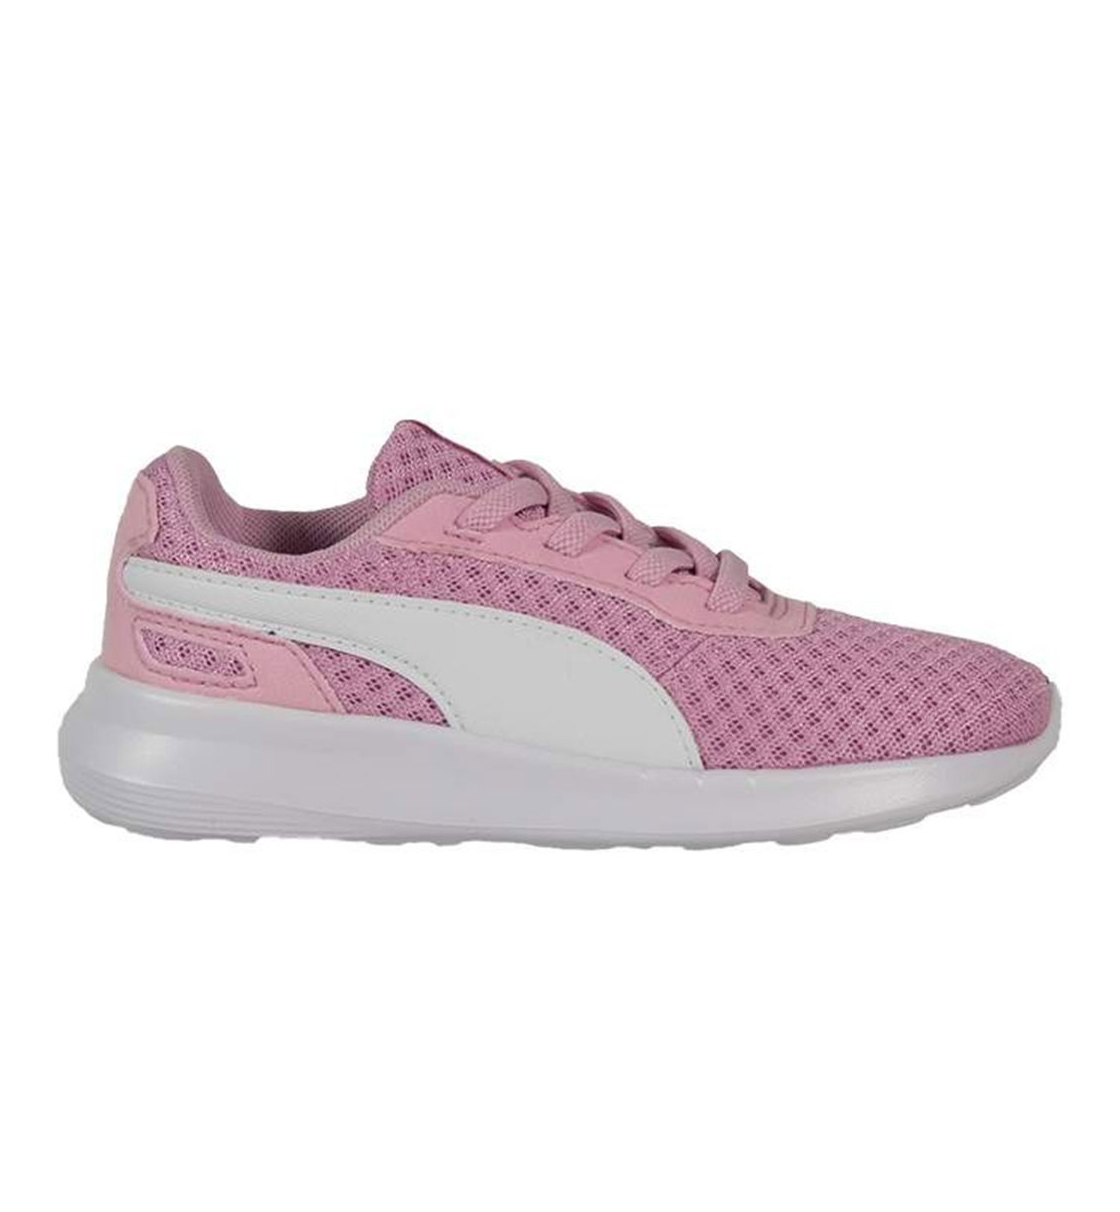 Puma Παιδικό Παπούτσι Ss19 St Activate Ac Ps 369070